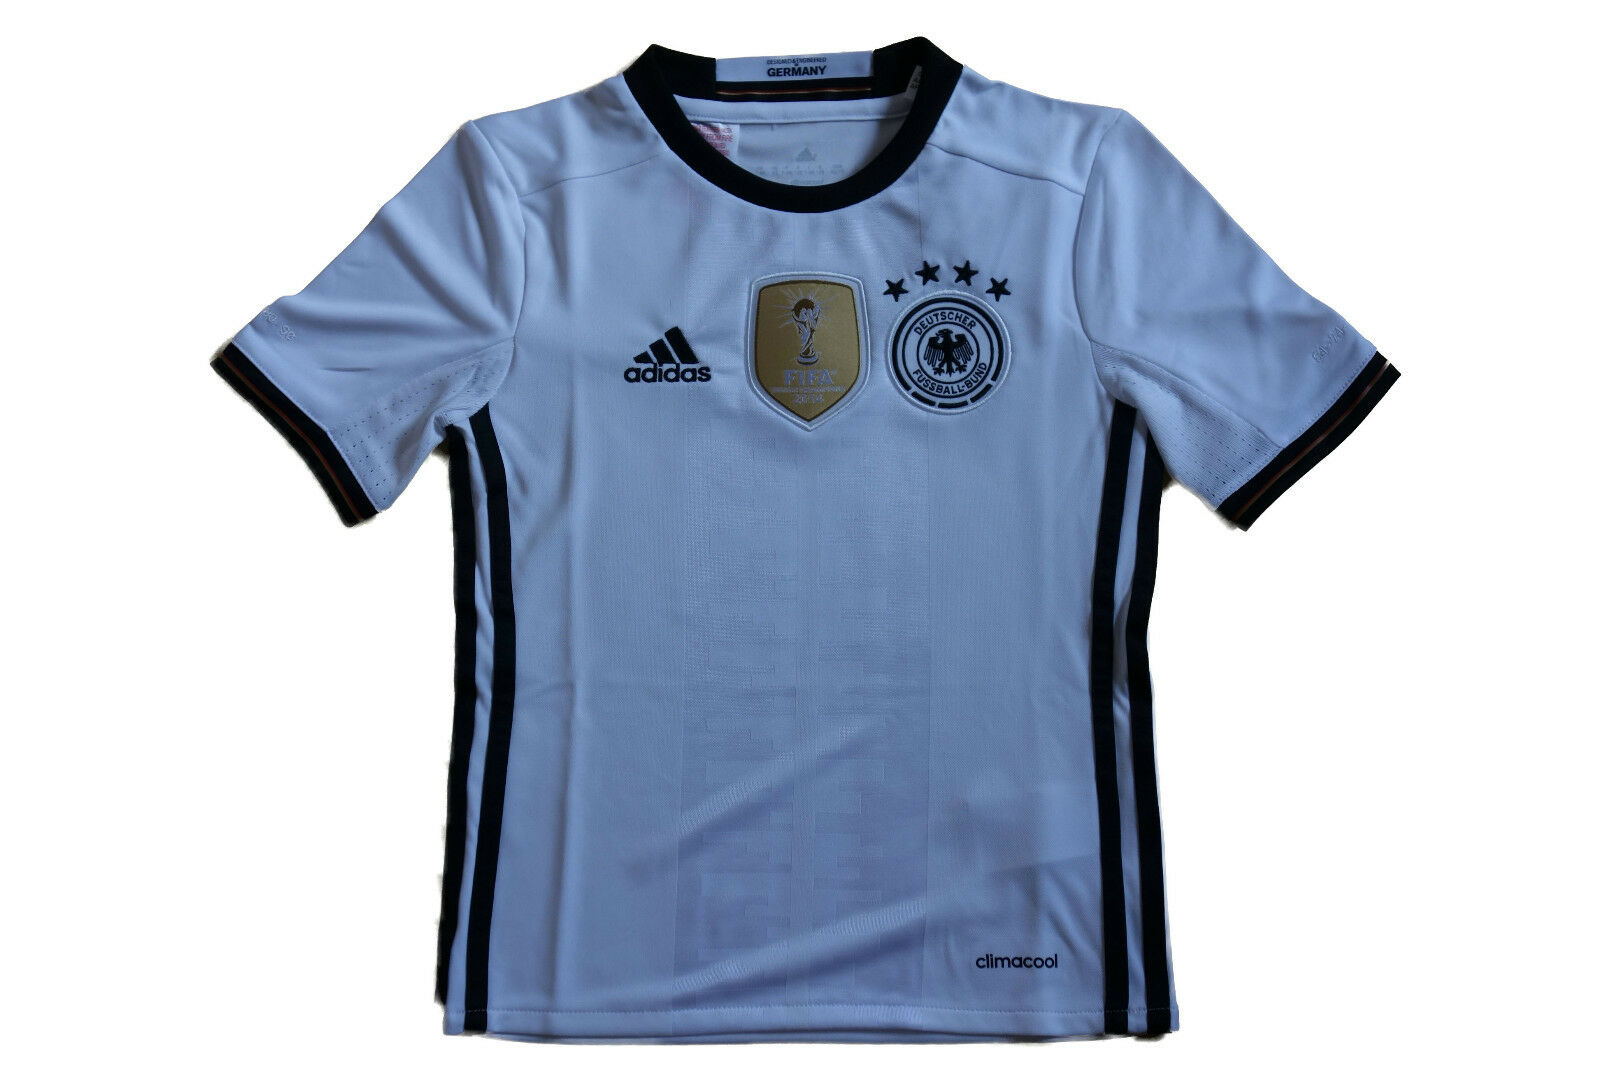 ADIDAS GERMANY DFB FOOTBALL Kids Leotard Size 152 164 176 AA0138 World Cup NEW